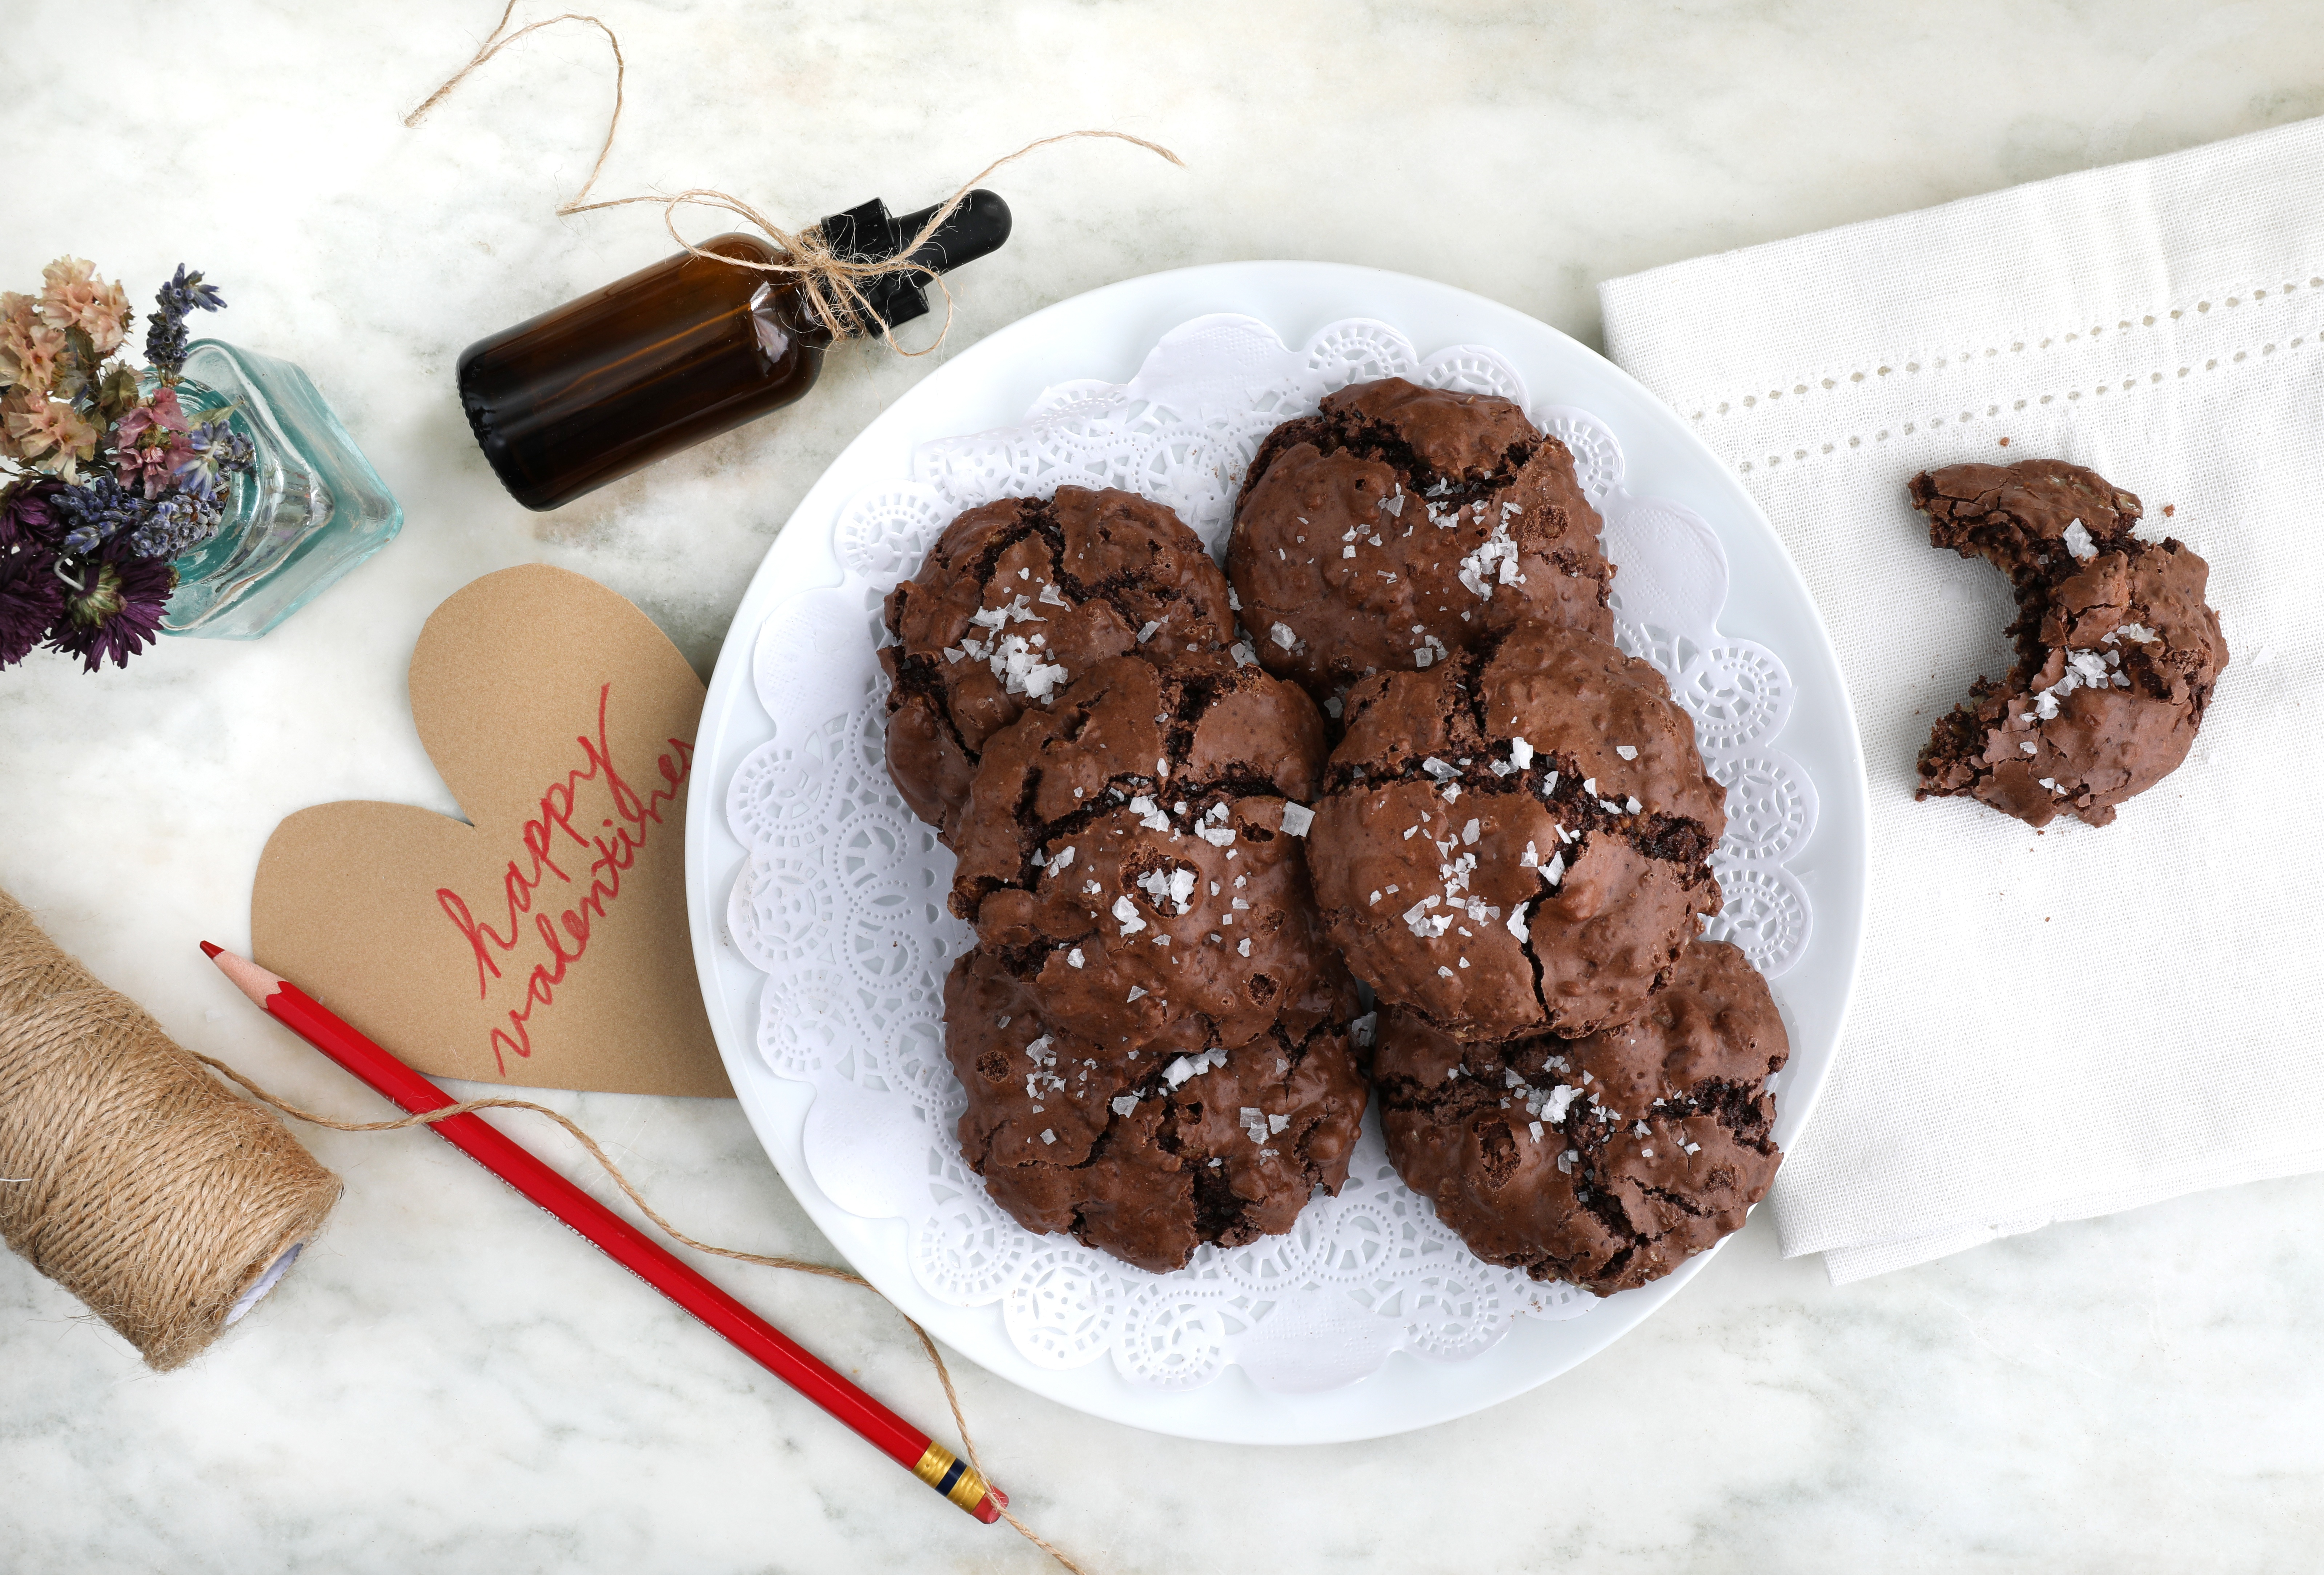 Chocolate chip cookies on plate on counter with flowers and handmade card and string